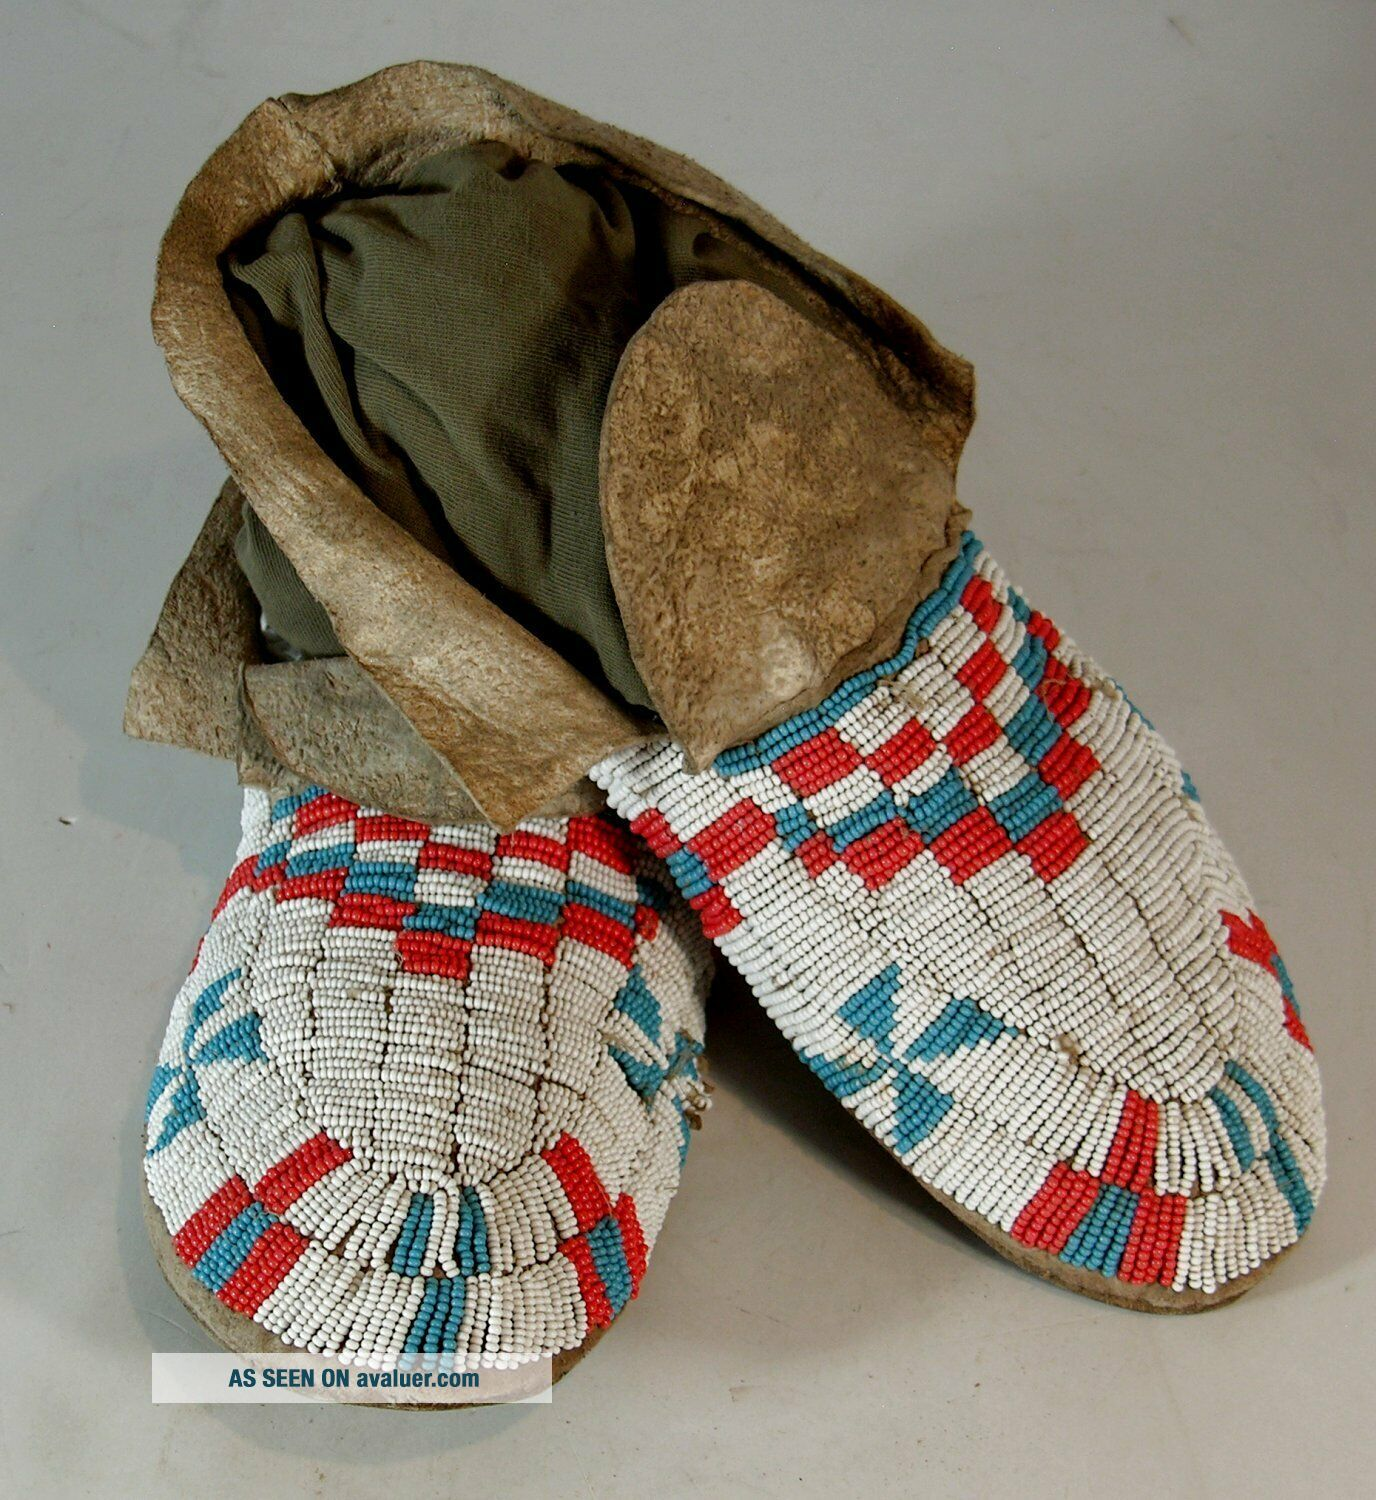 ca1910s PAIR NATIVE AMERICAN SIOUX INDIAN BEAD DECORATED HIDE MOCCASINS BEADED